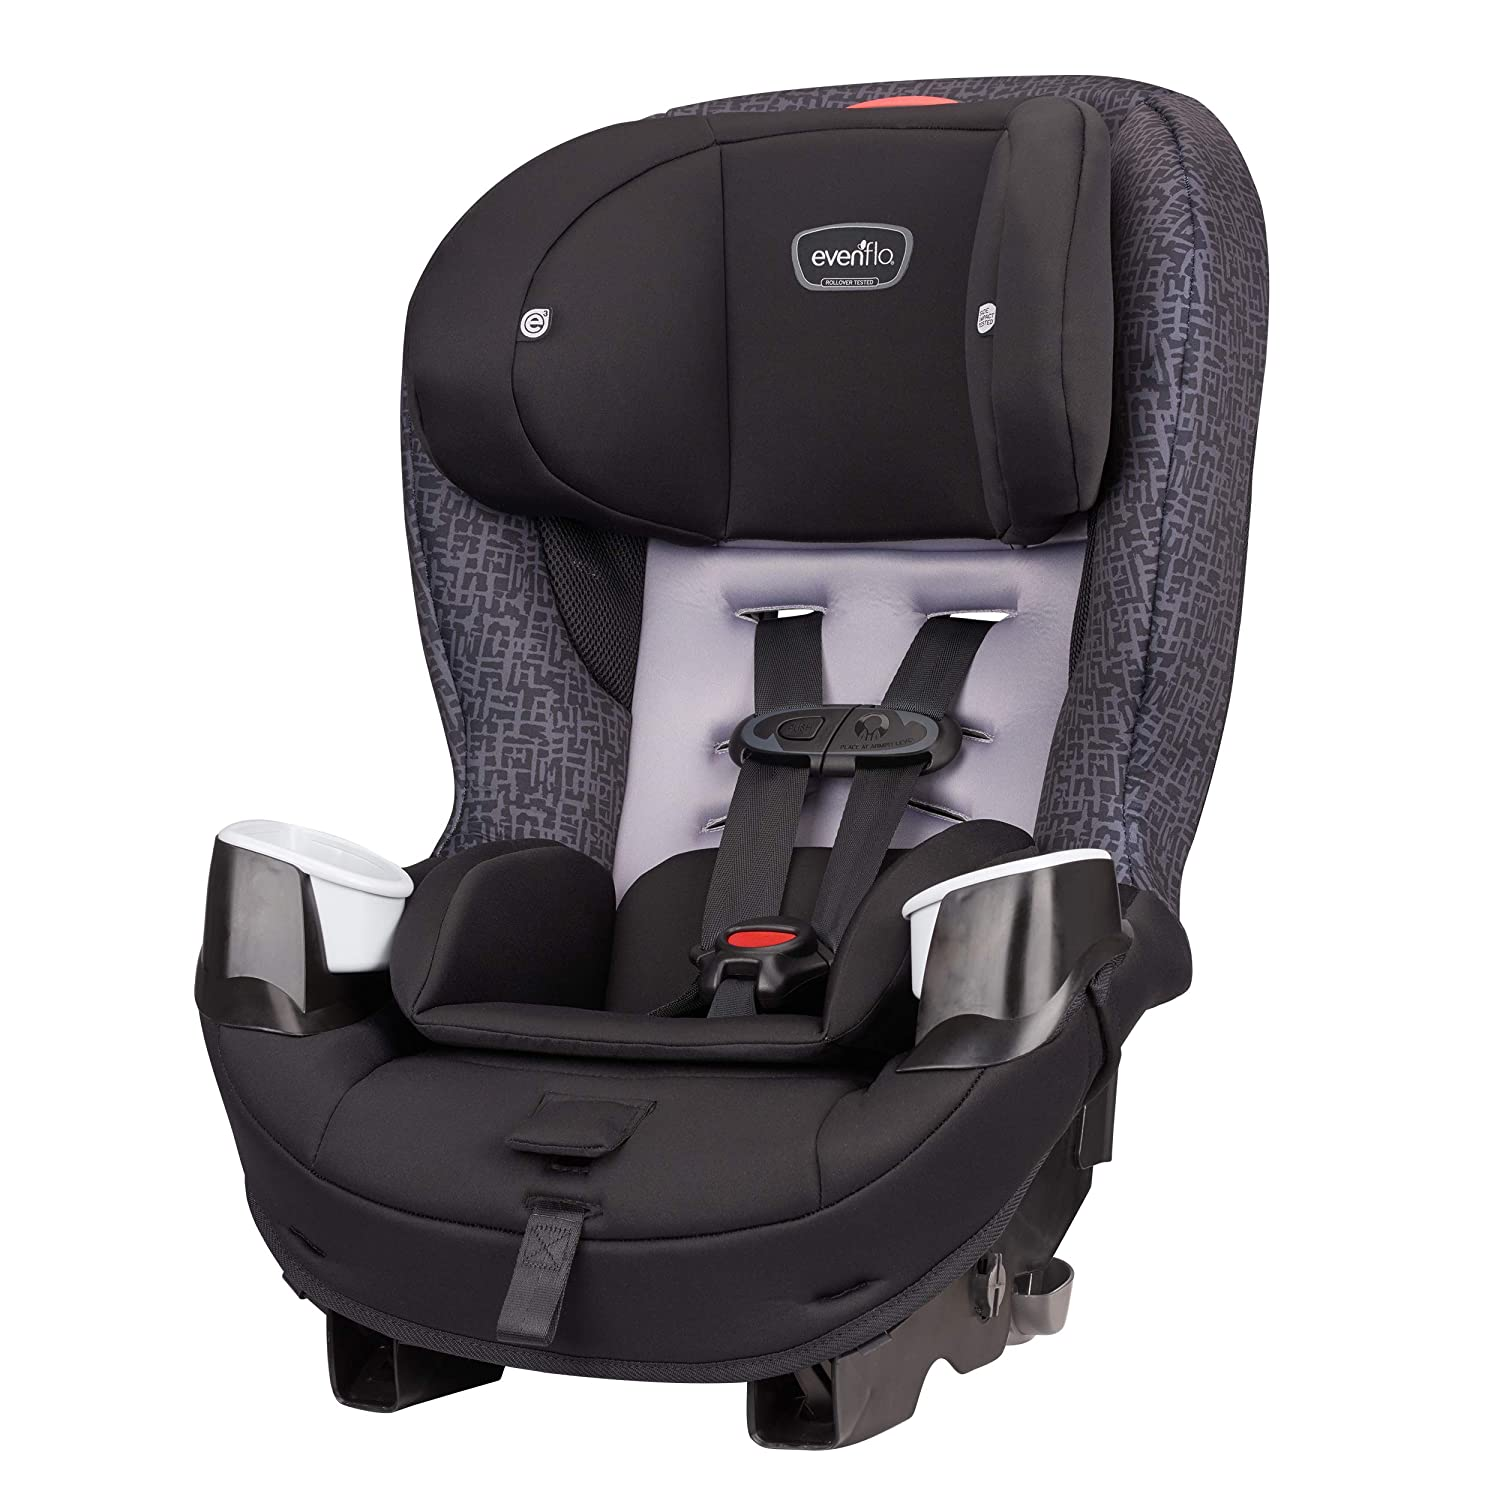 Evenflo Stratos 65 Convertible Car Seat Air Flow Vents 2 Car Seats in 1 Rollover-Tested Removable Body Pillow Quick-Connect LATCH Hooks Forward // Rear Facing Car Seat Boulder Gray